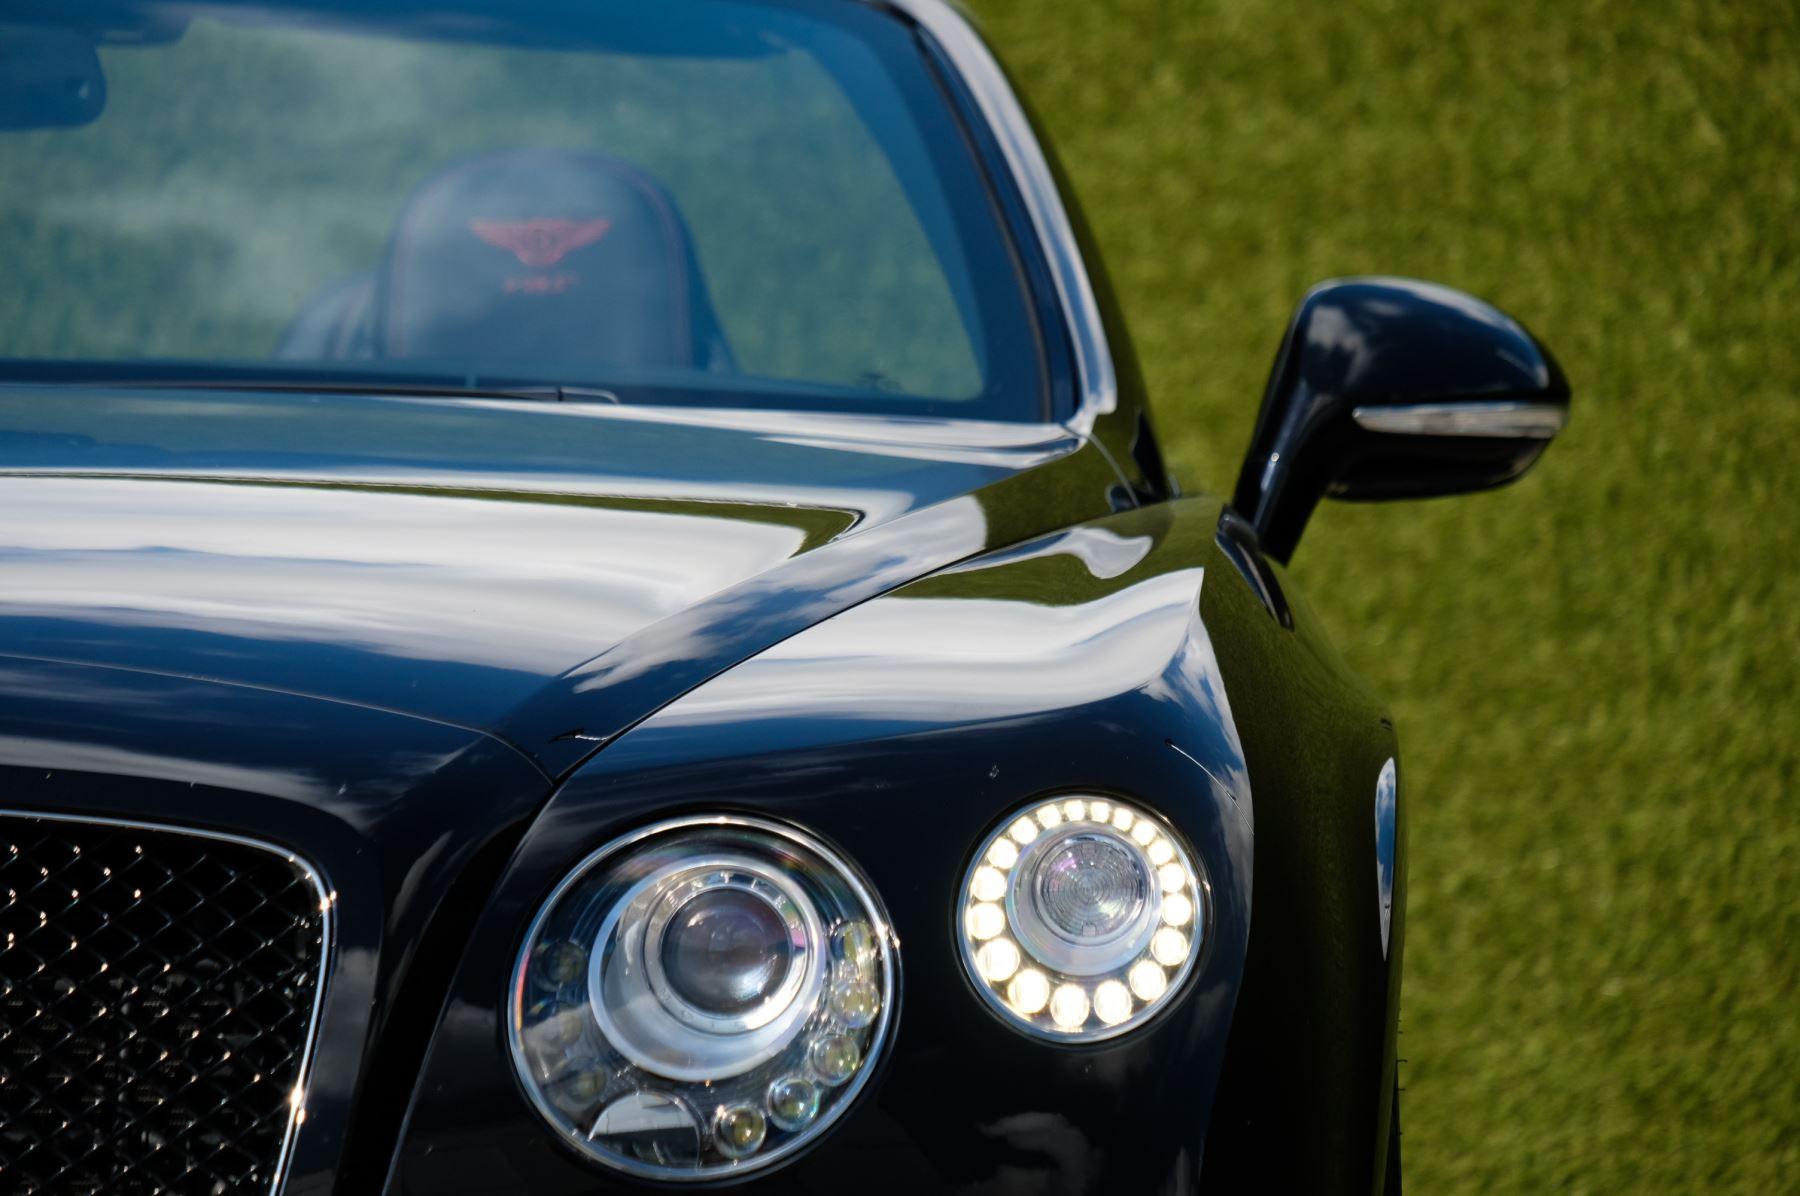 Bentley Continental GTC 4.0 V8 S - Mulliner Driving Spec - Sports Exhaust image 6